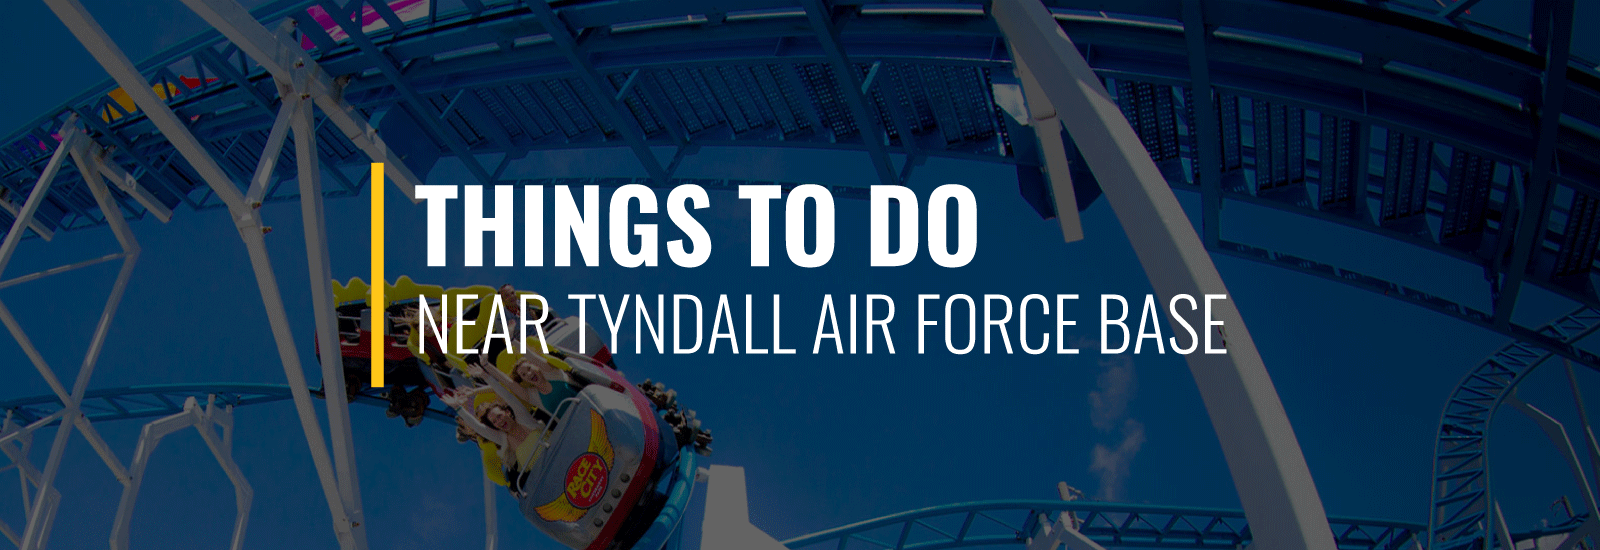 Things to Do Near Tyndall AFB